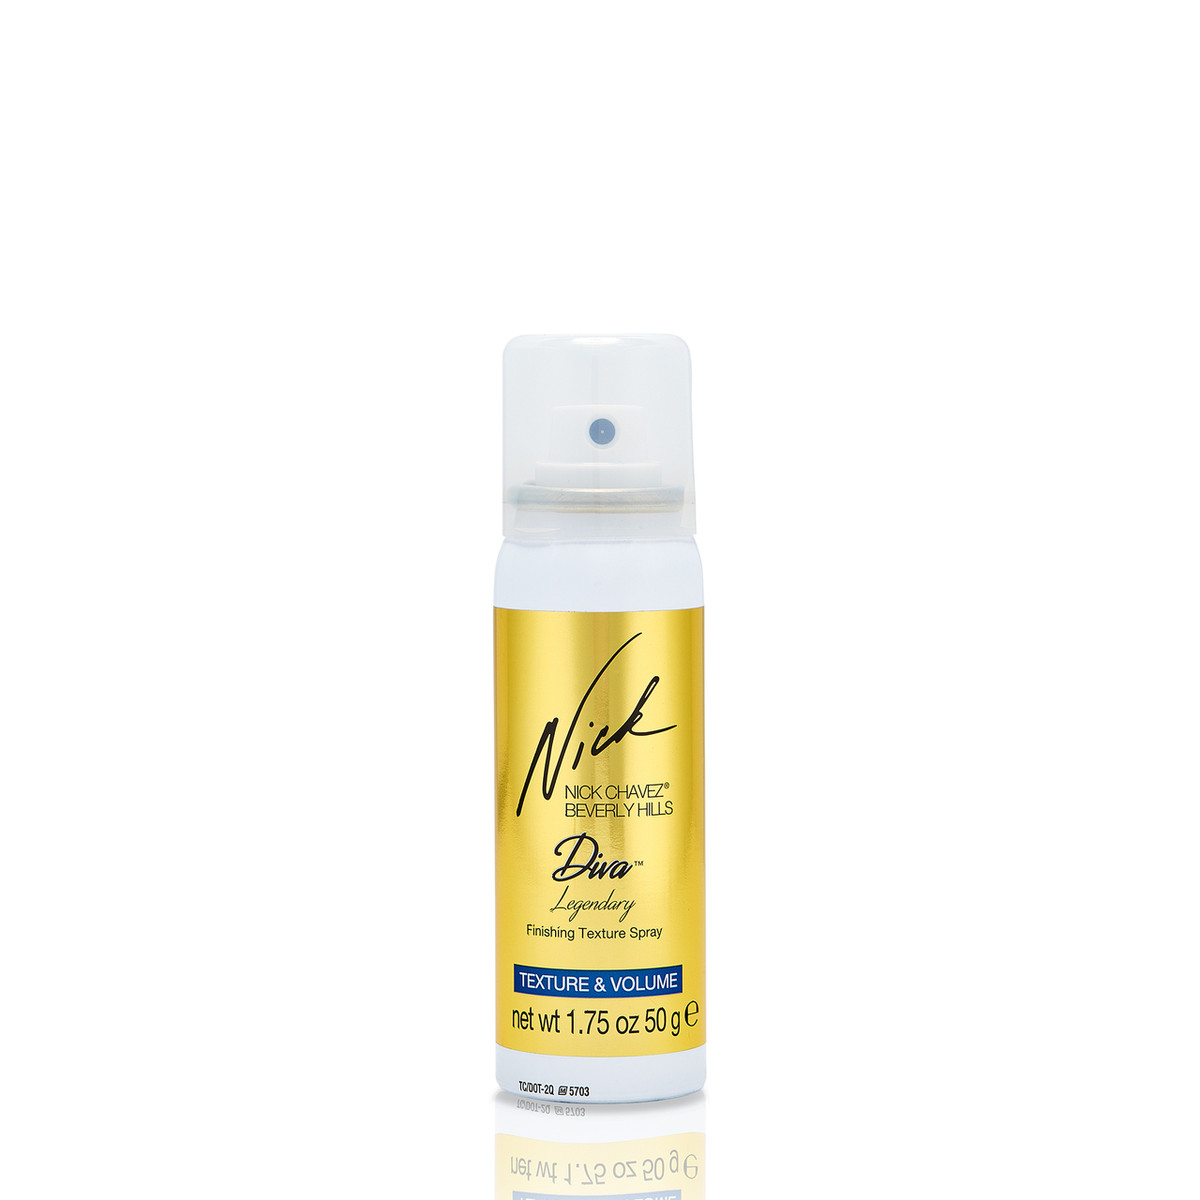 Diva Legendary Texturizing Spray 1.7oz.